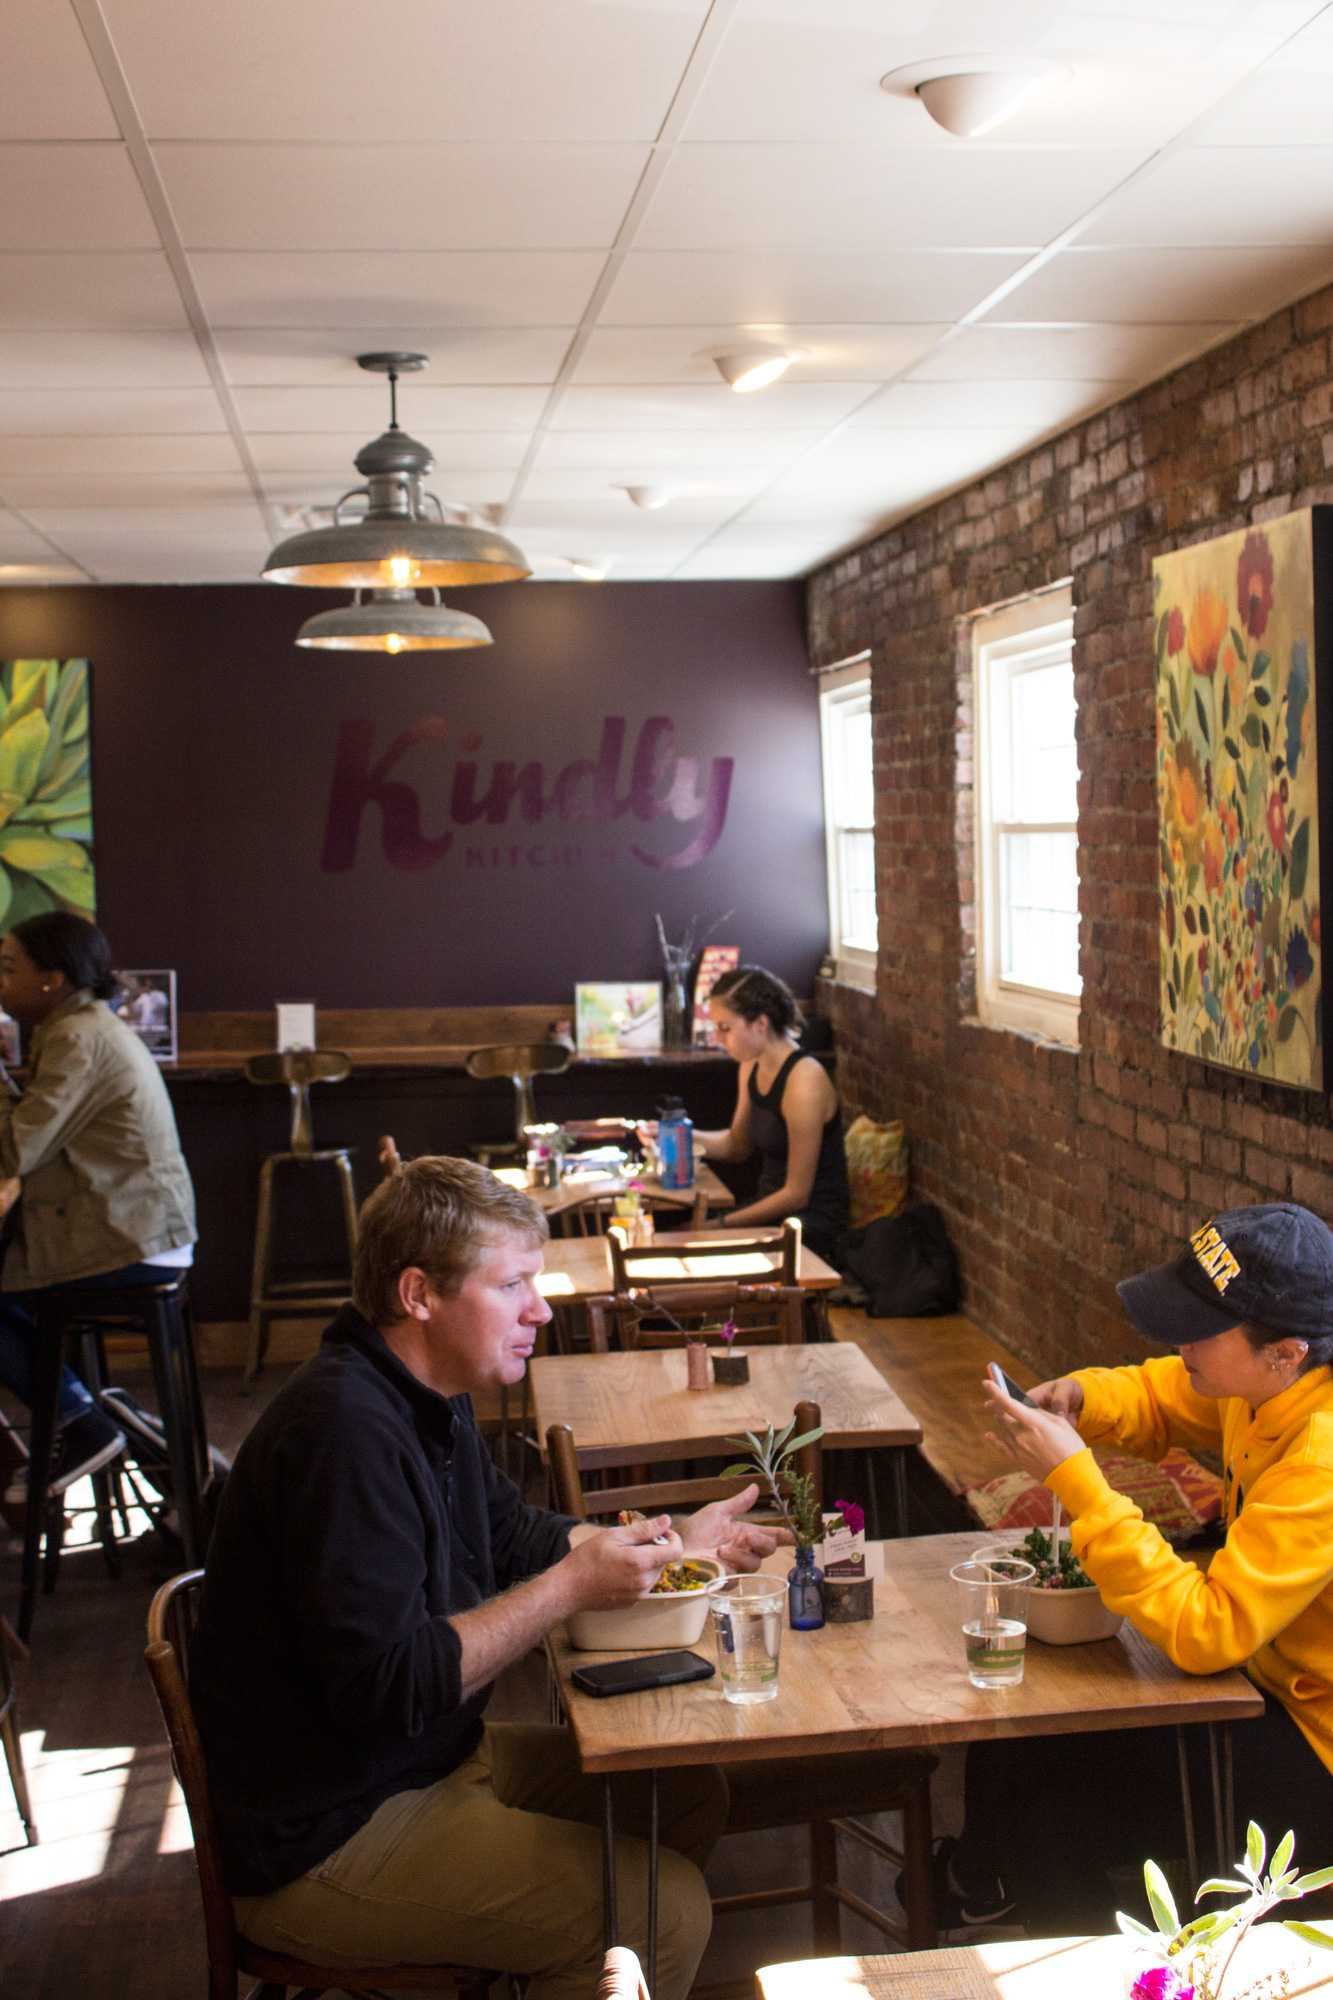 Kindly Kitchen's is 100% vegan and 100% gluten free bowls. The unique restaurant is located on King Street on the conner of Depot Street and they sell a variety of bowls, salads, and smoothies.